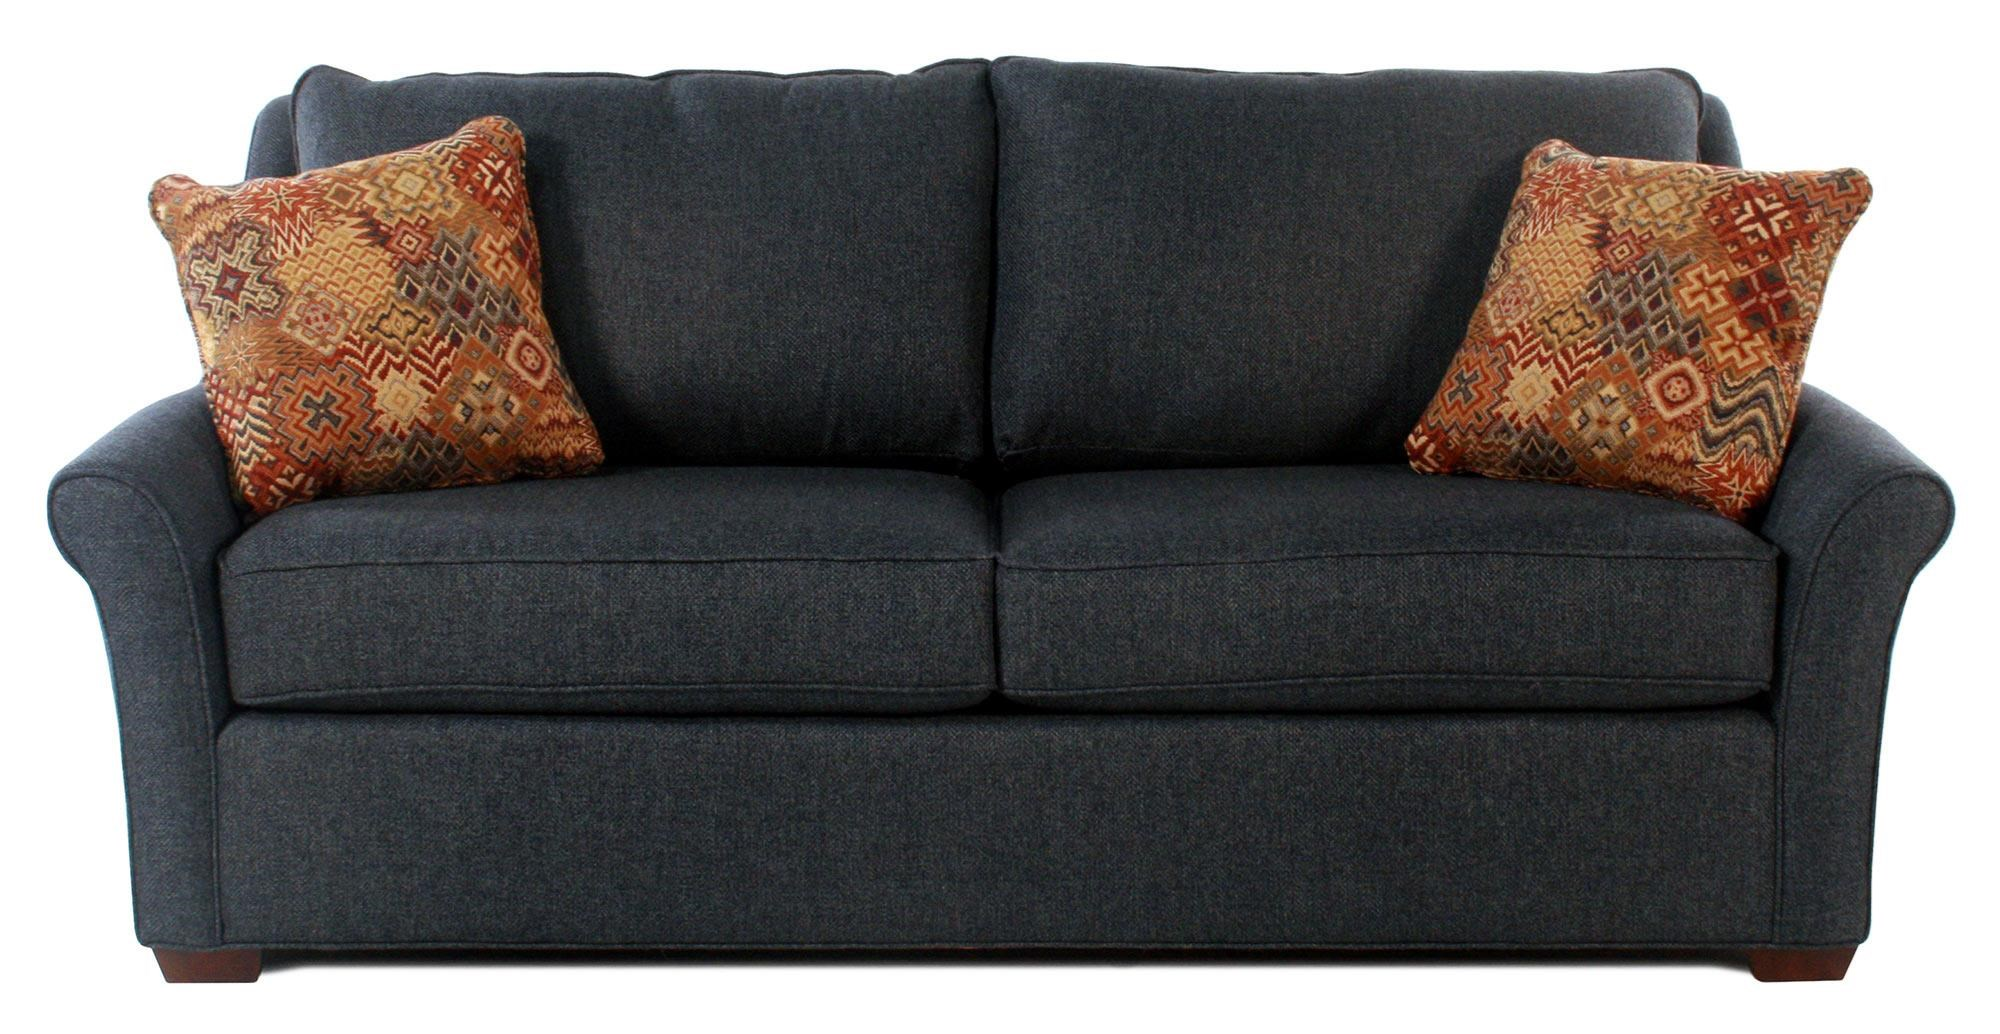 Cozy Life Revolution Transitional Queen Sleeper Sofa w ...